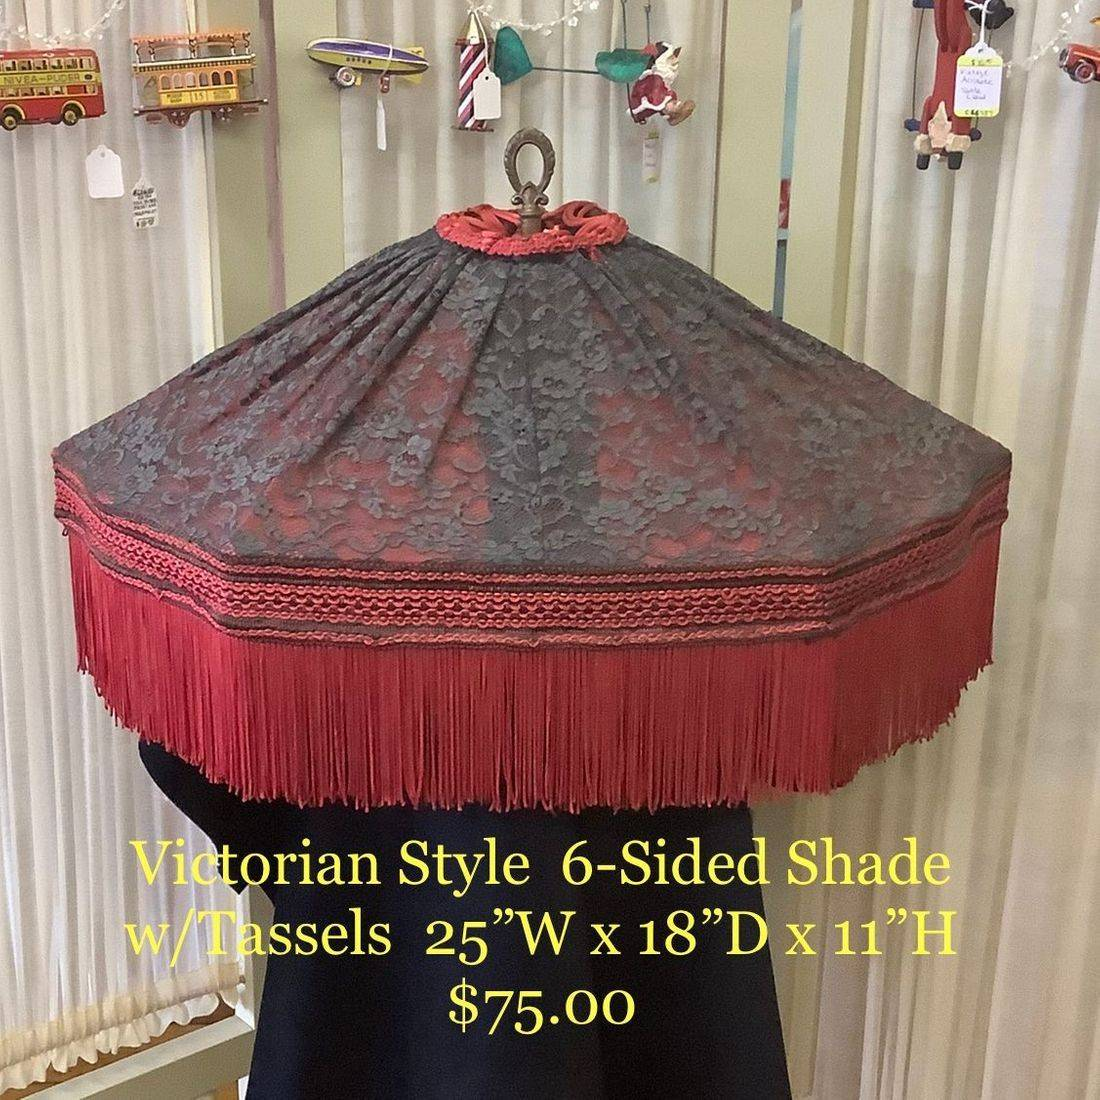 Victorian Style 6-Sided Shade w/Tassels  $75.00